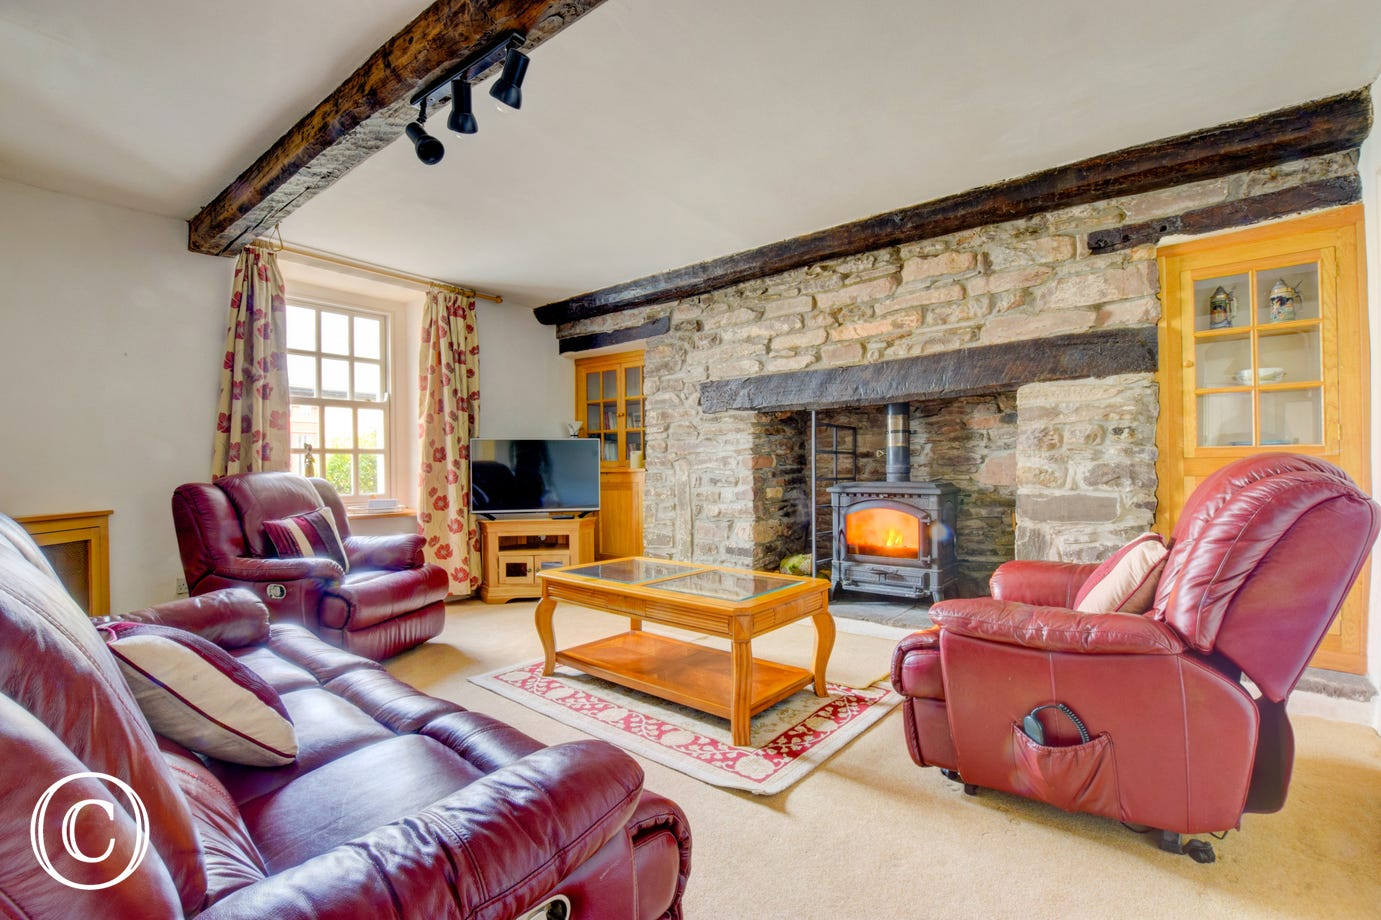 Wood burning stove within traditional feature fireplace.